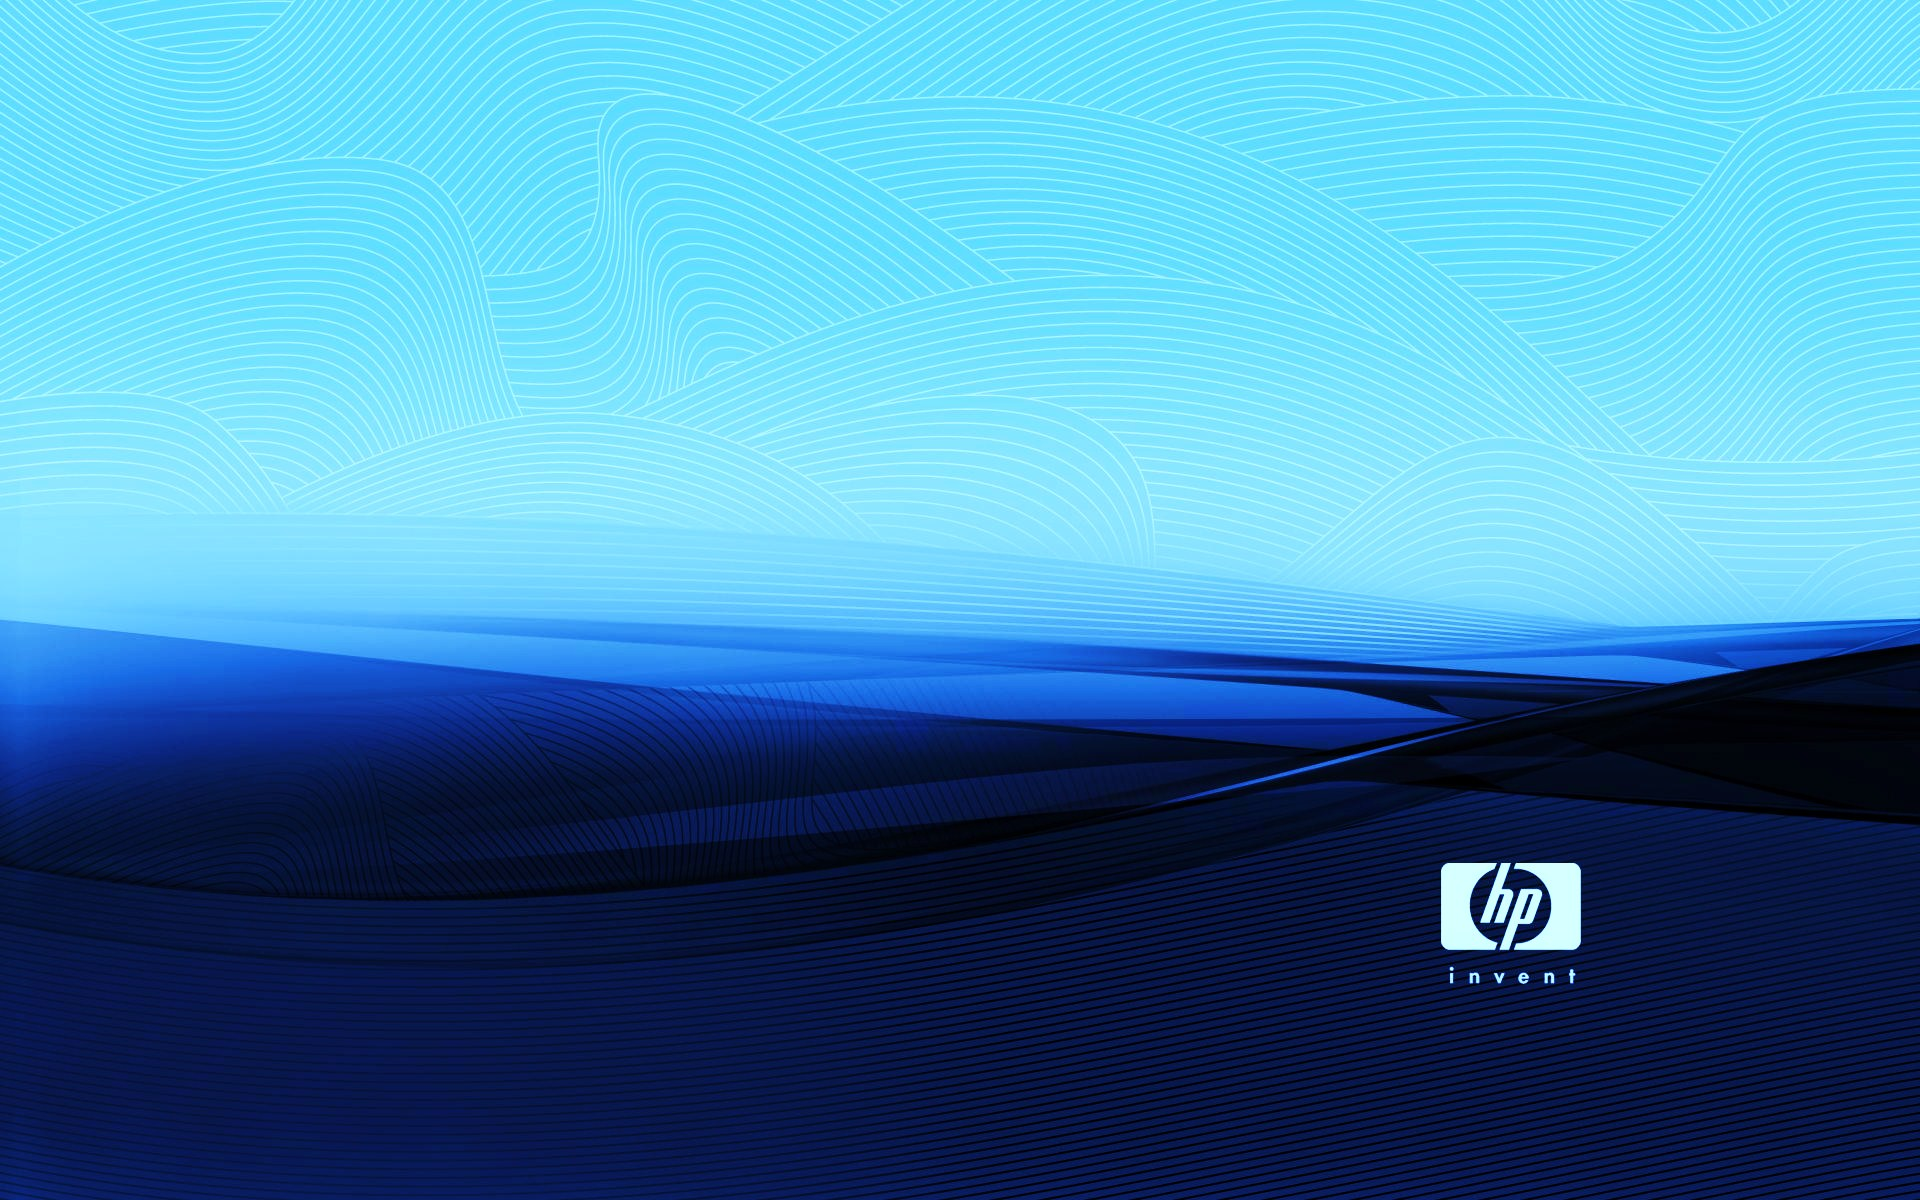 Wallpaper Hewlett Packard